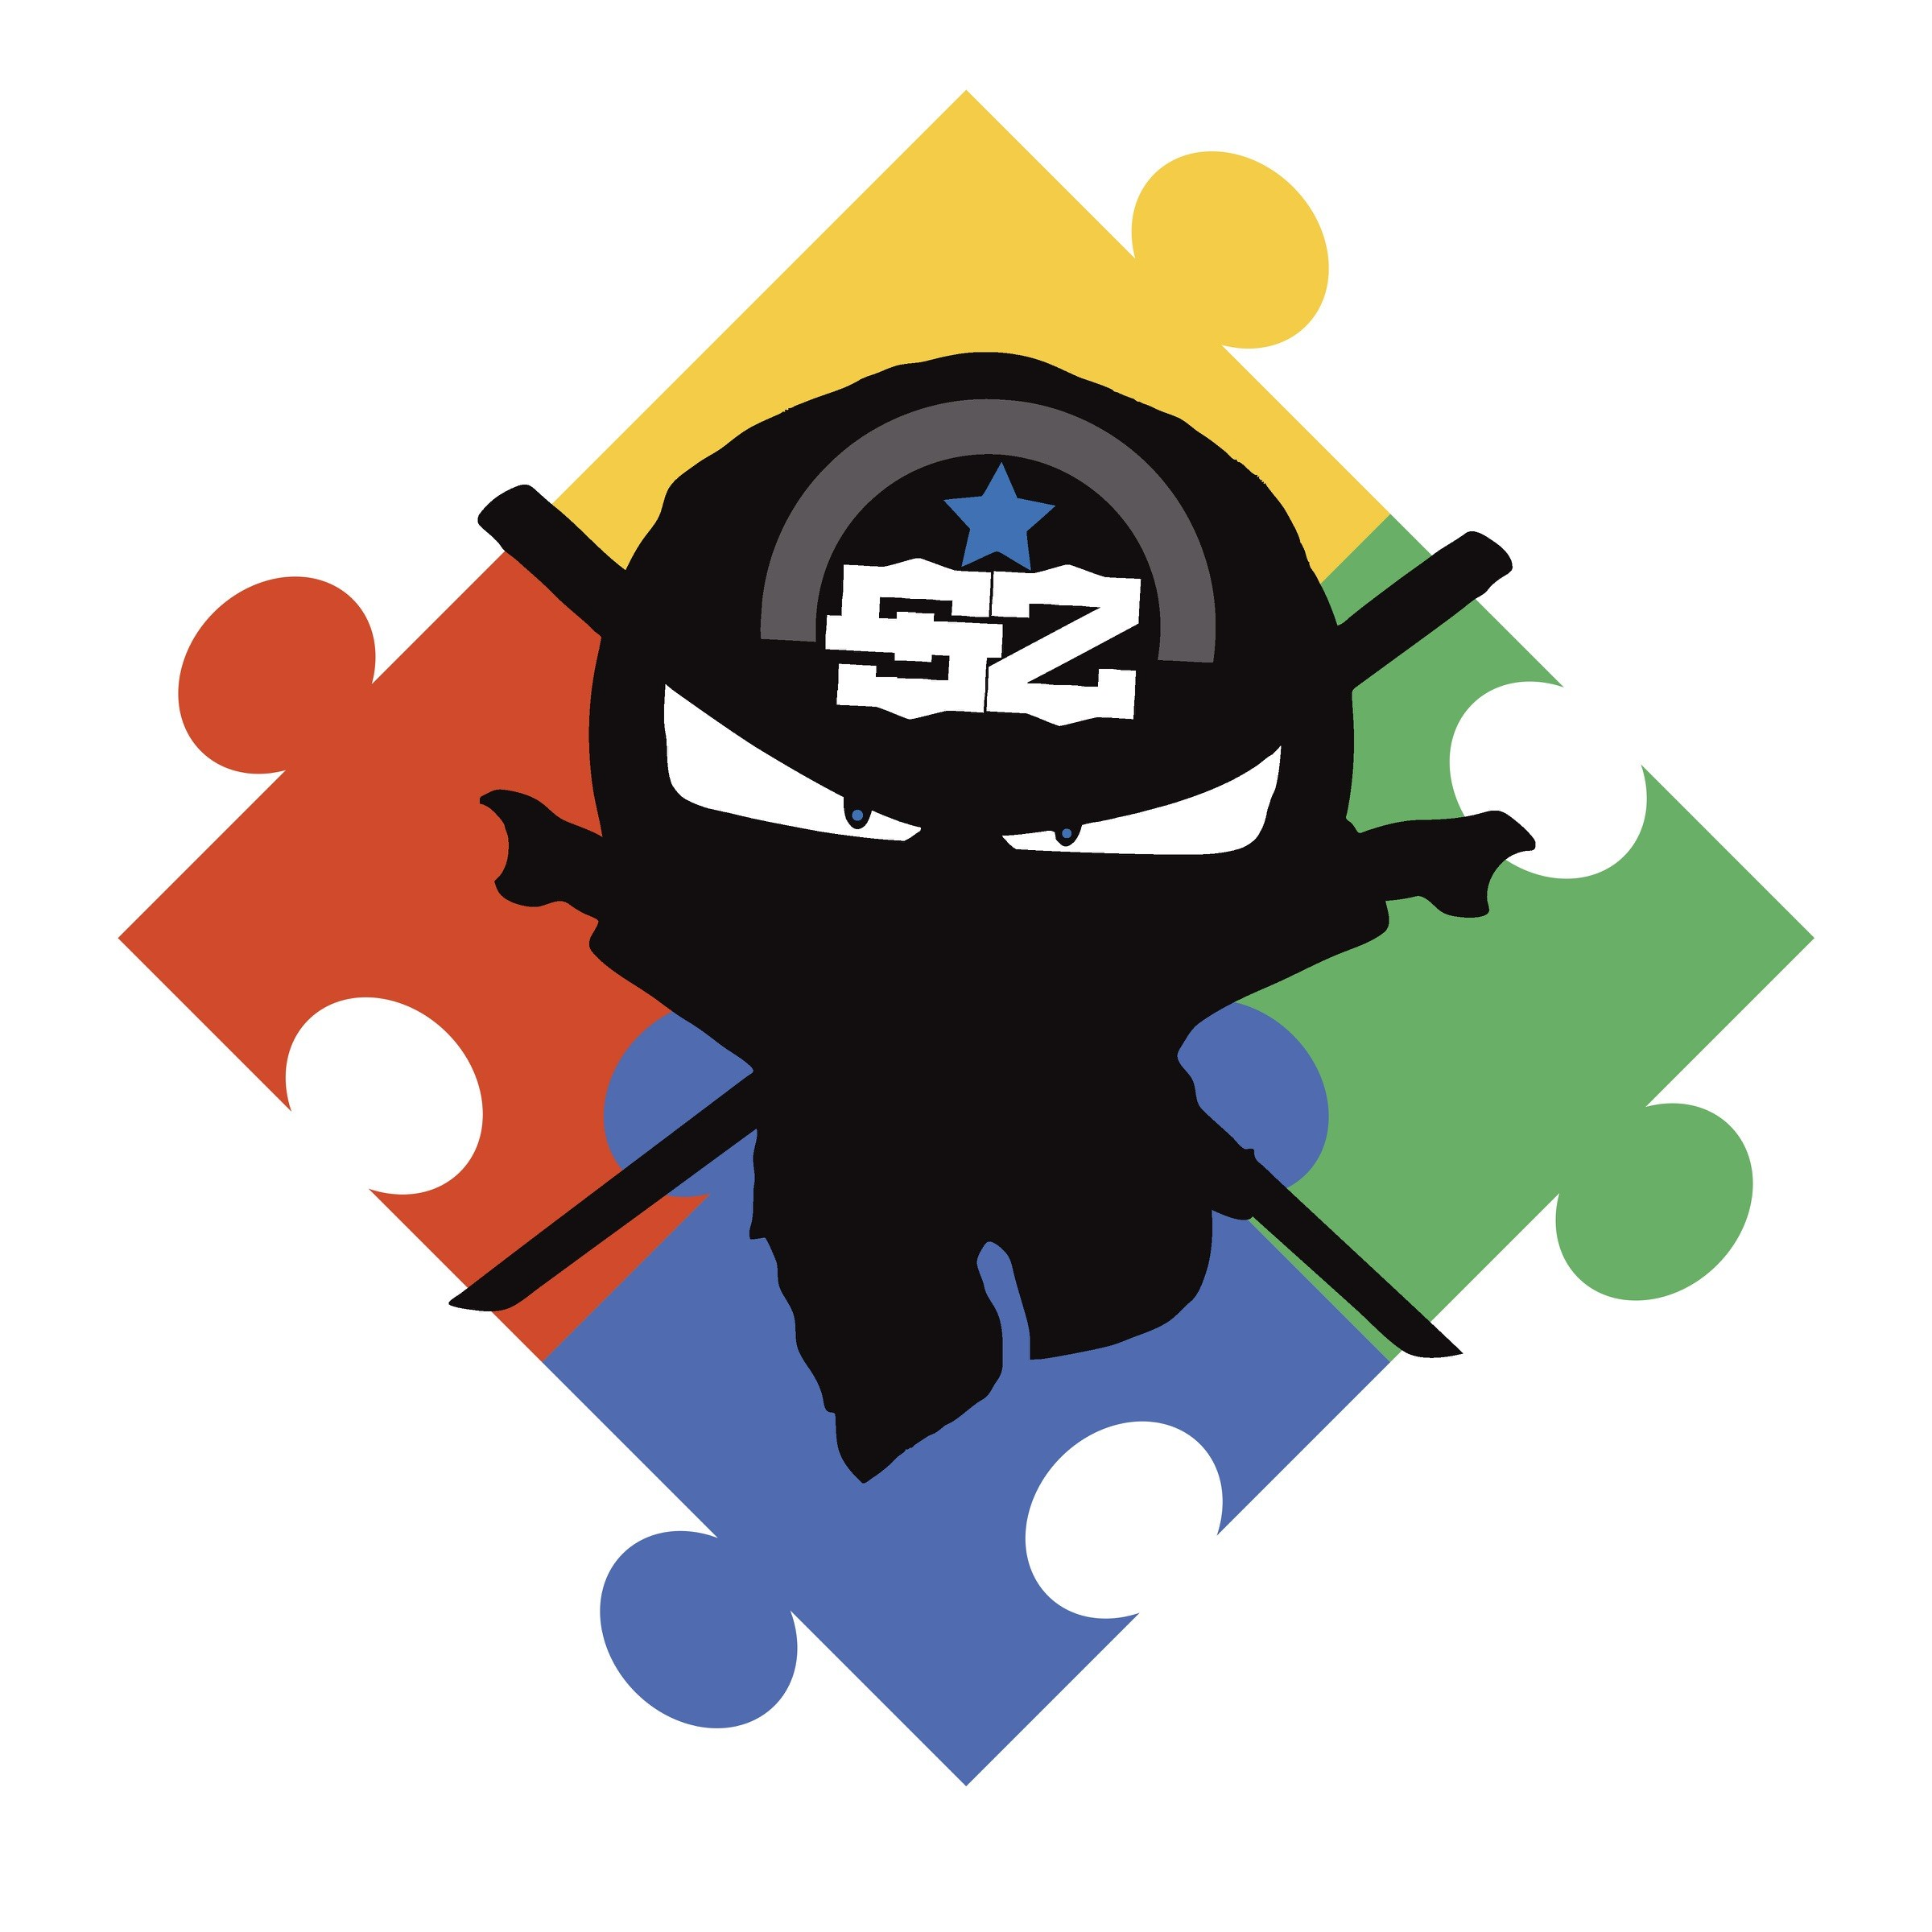 The Spectrum Skillz Ninja represents the ability of martial artists who are on the autism spectrum to achieve success